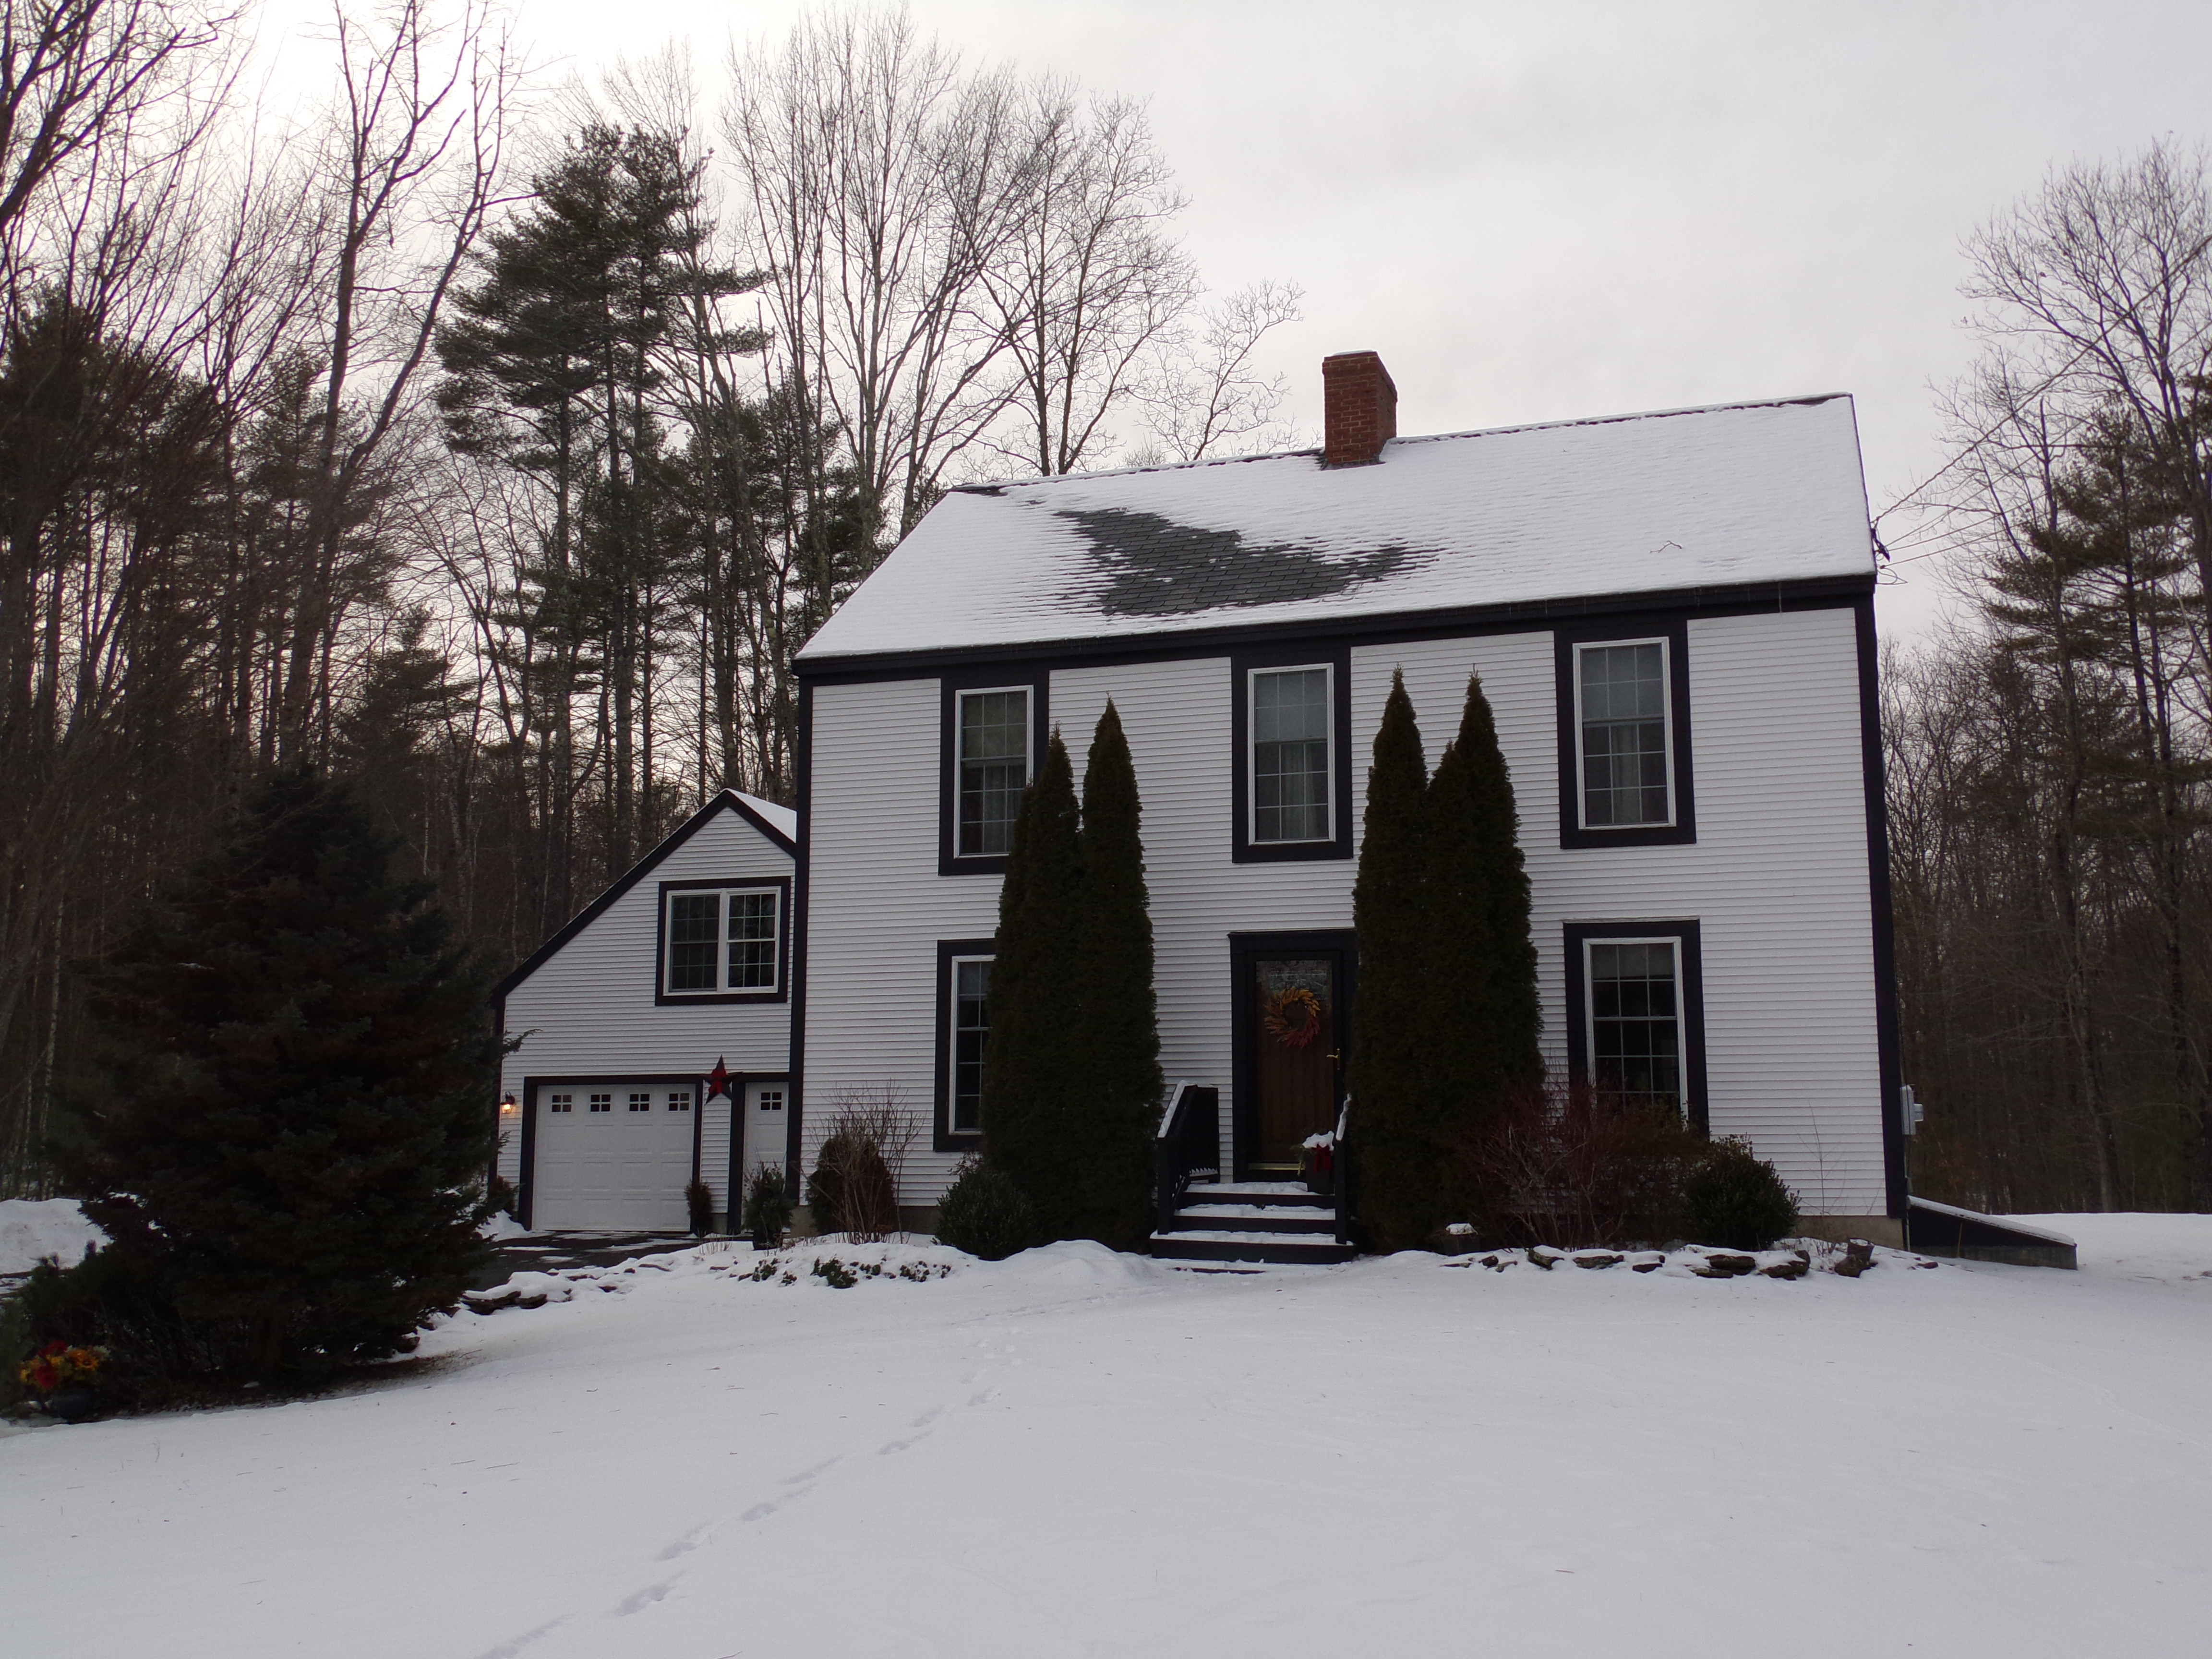 397 Washington St, Barrington, New Hampshire 03825